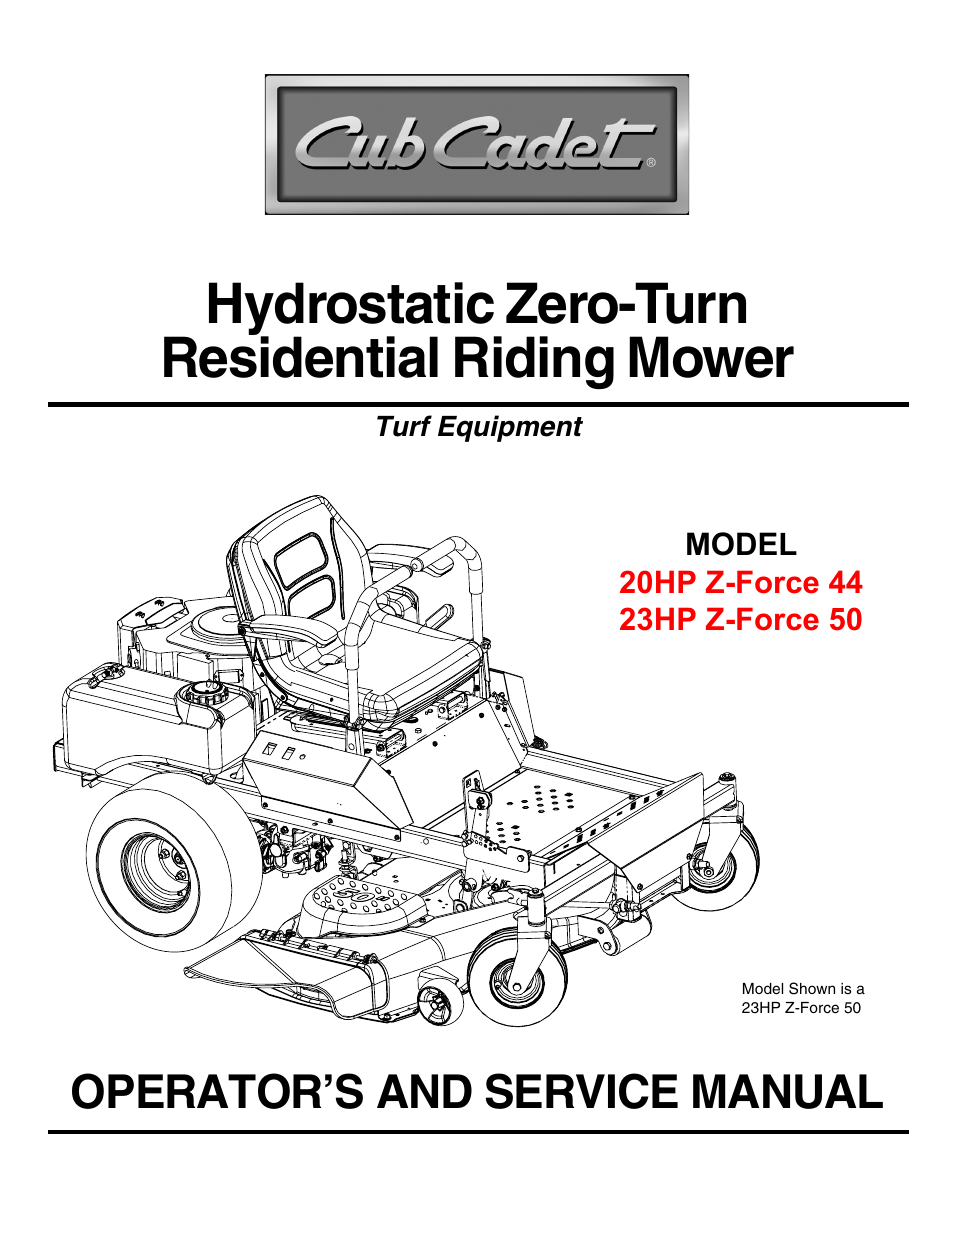 Cub Cadet 23HP Z-Force 50 User Manual | 32 pages | Also for: 20HP Z-Force 44